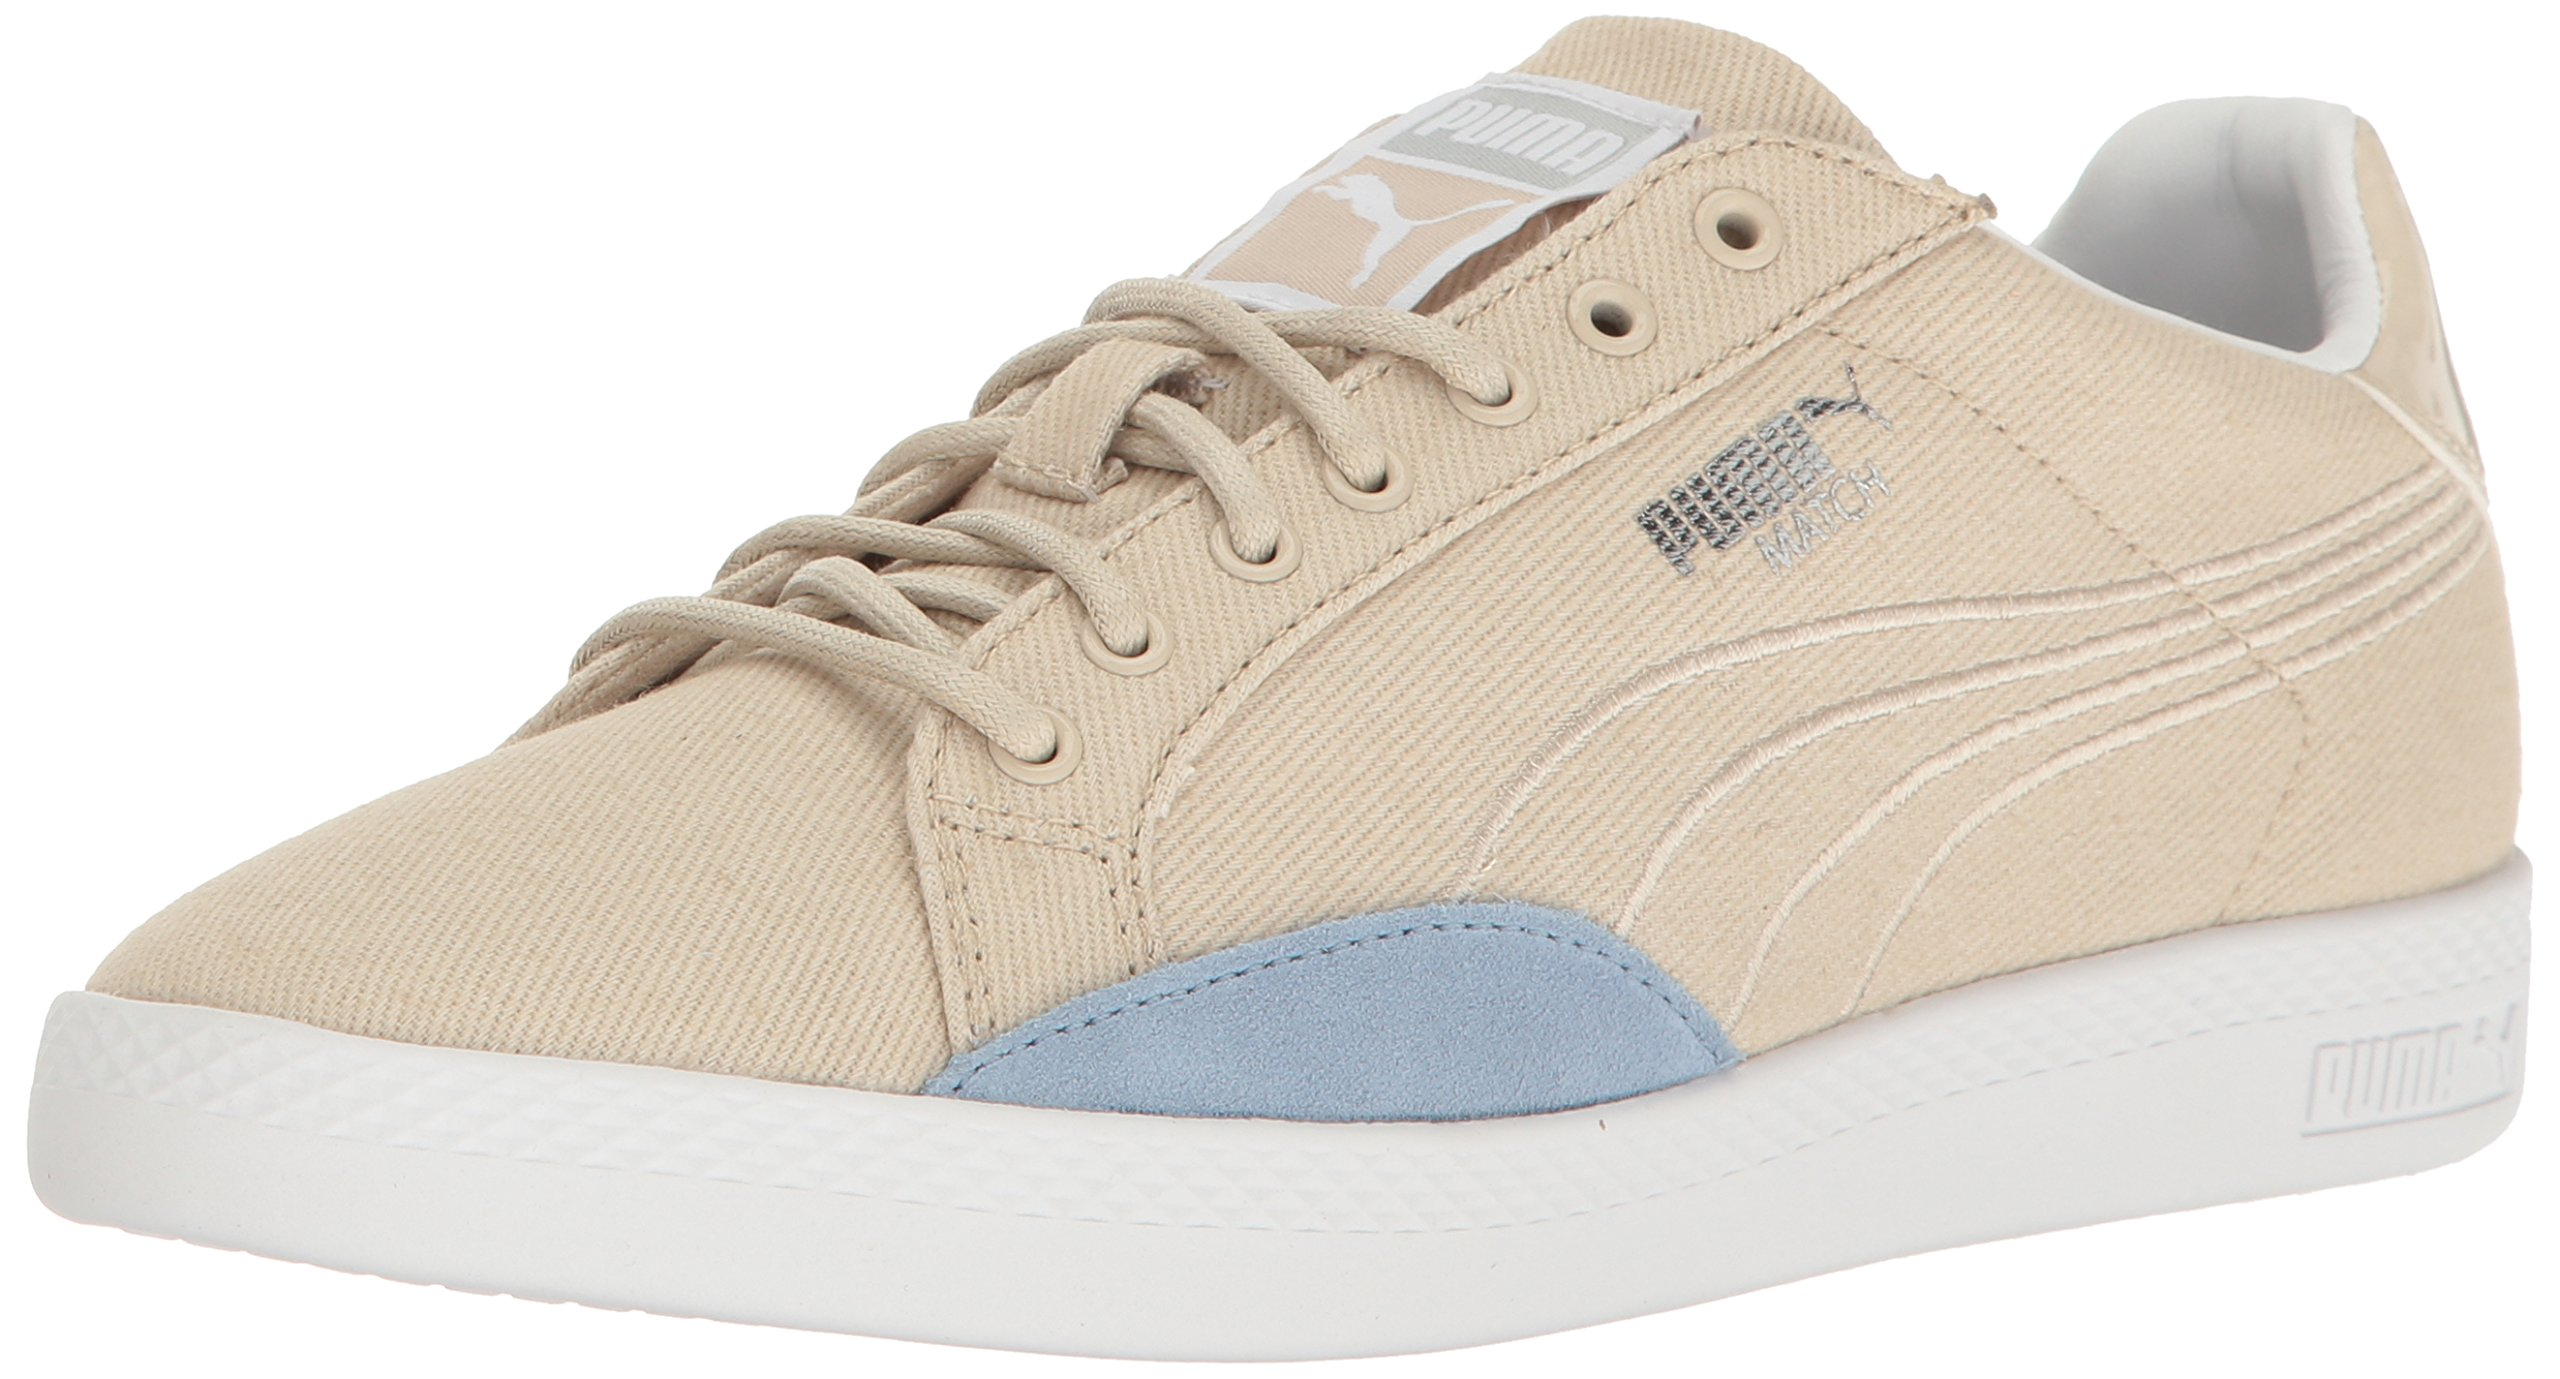 PUMA Women's Match Denim WN's Field Hockey Shoe, Oatmeal, 7 M US by PUMA